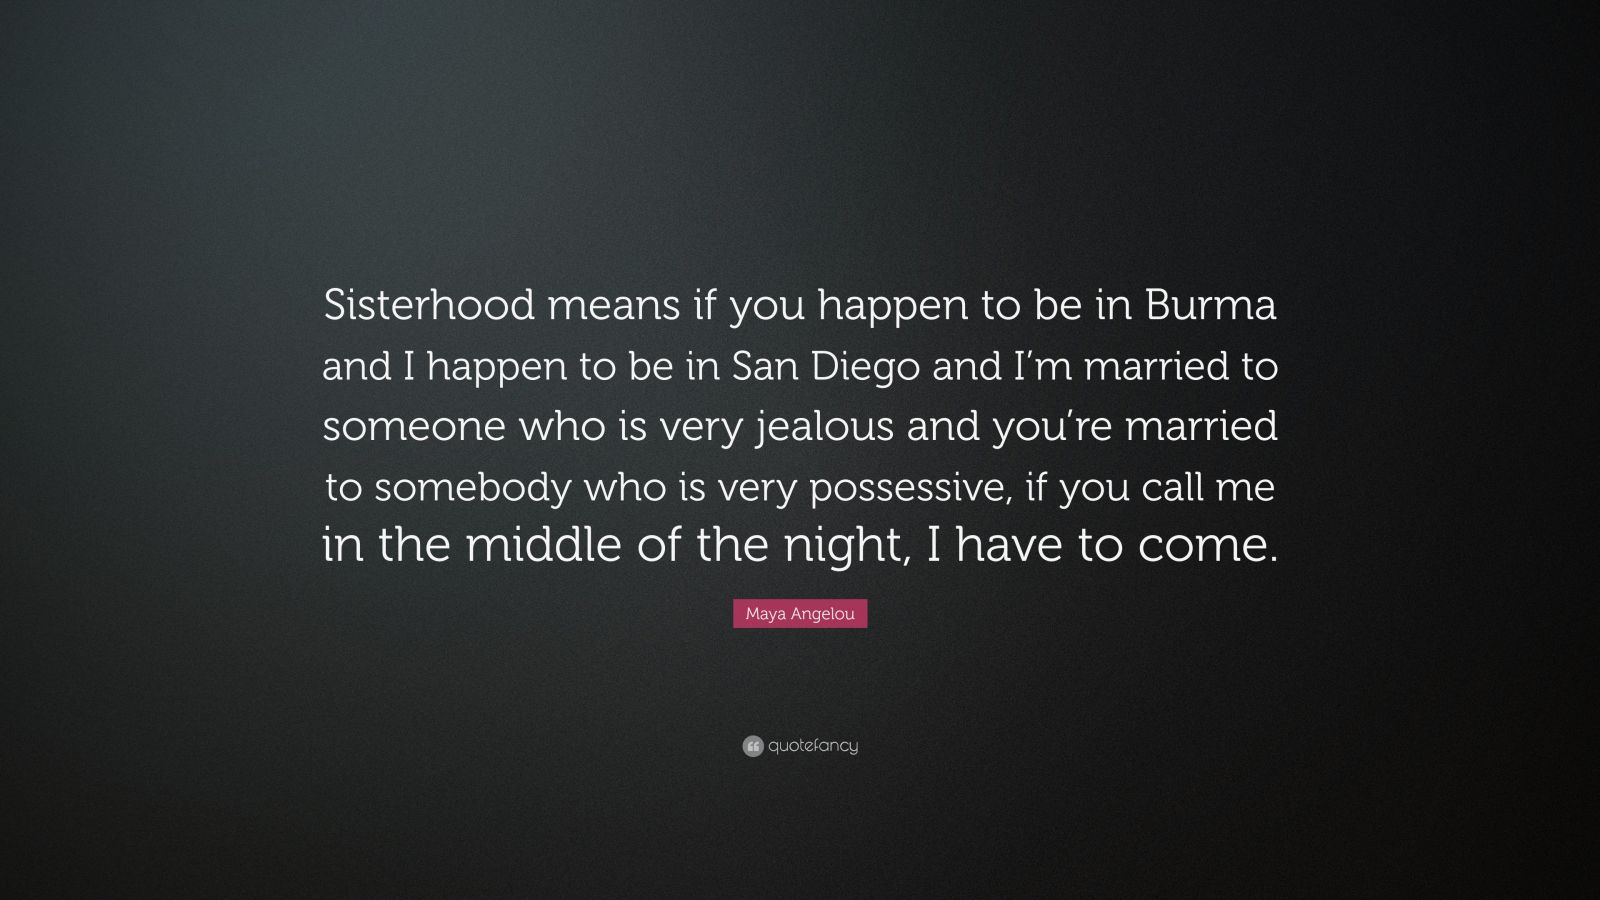 """Maya Angelou Quote: """"Sisterhood means if you happen to be in Burma and I happen to be in San Diego and I'm married to someone who is very jealous and you're married to somebody who is very possessive, if you call me in the middle of the night, I have to come."""""""